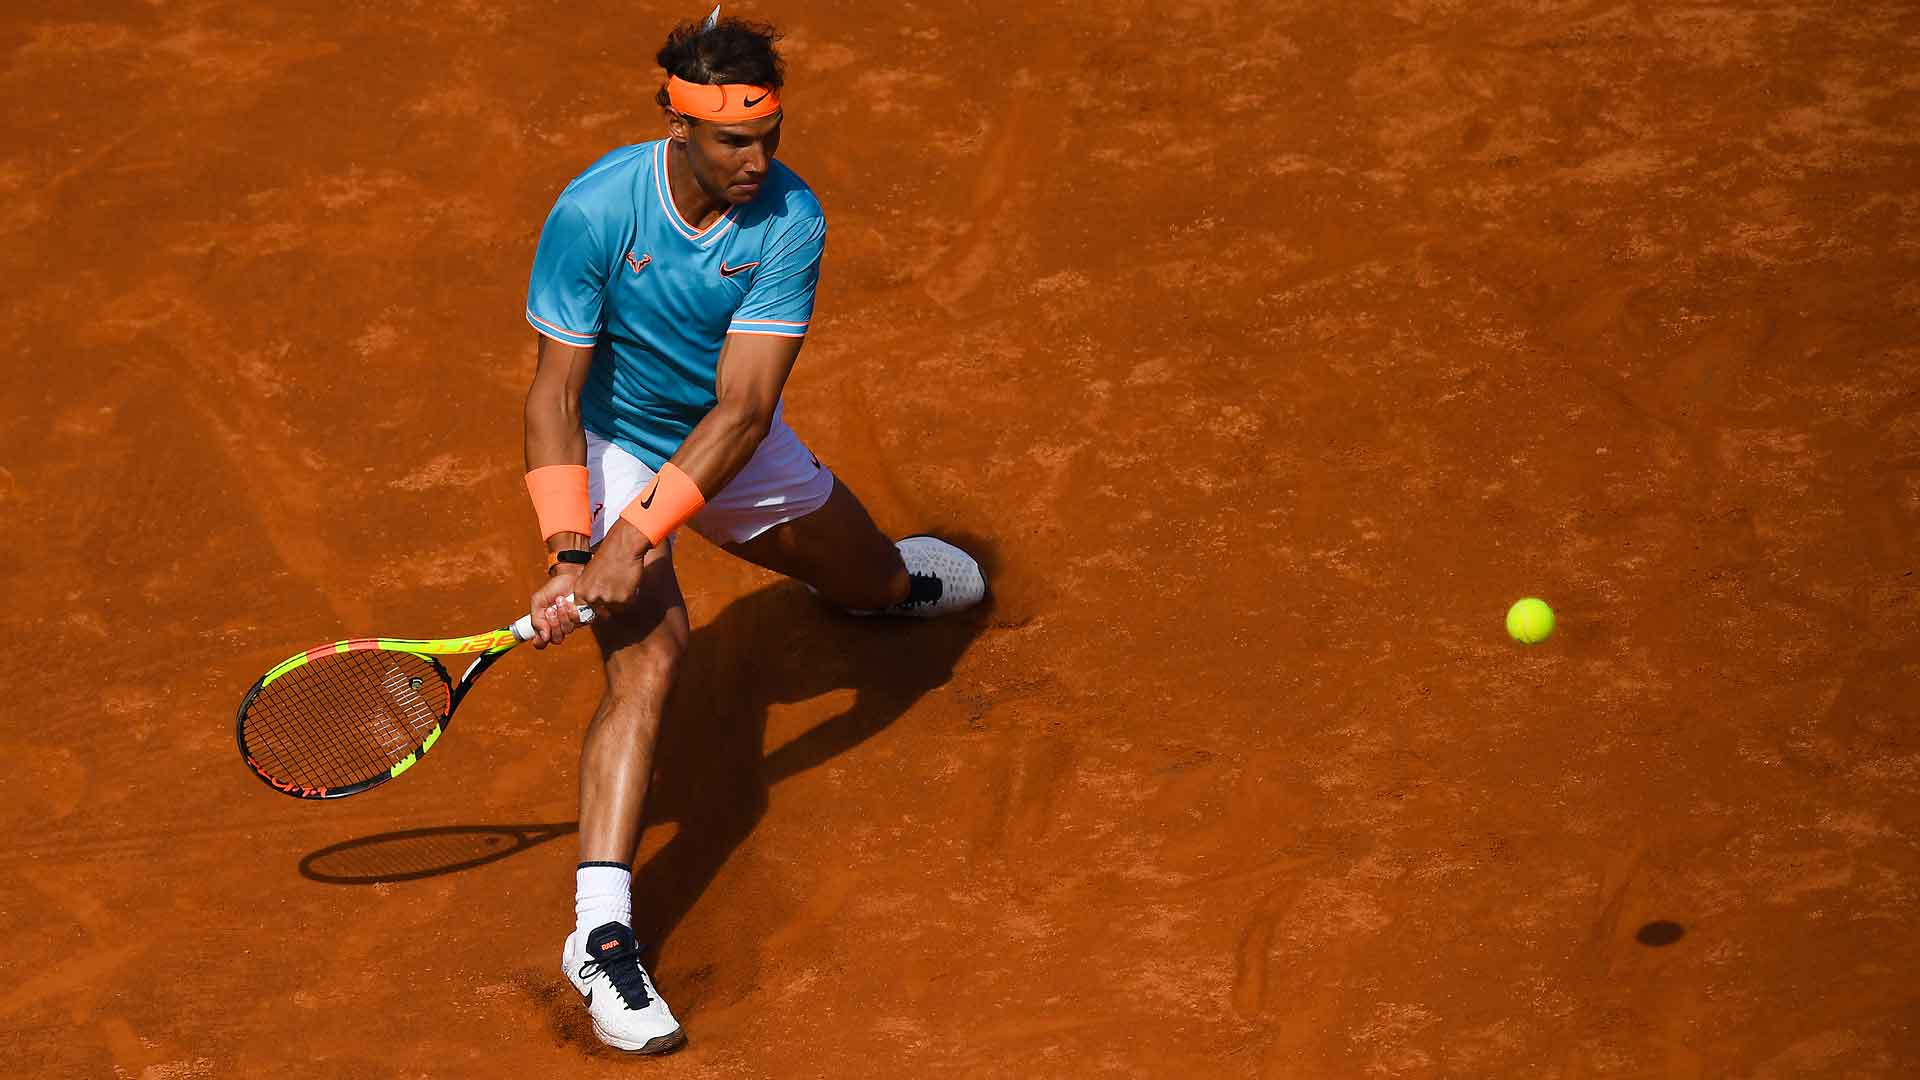 Nadal strikes a backhand in Barcelona